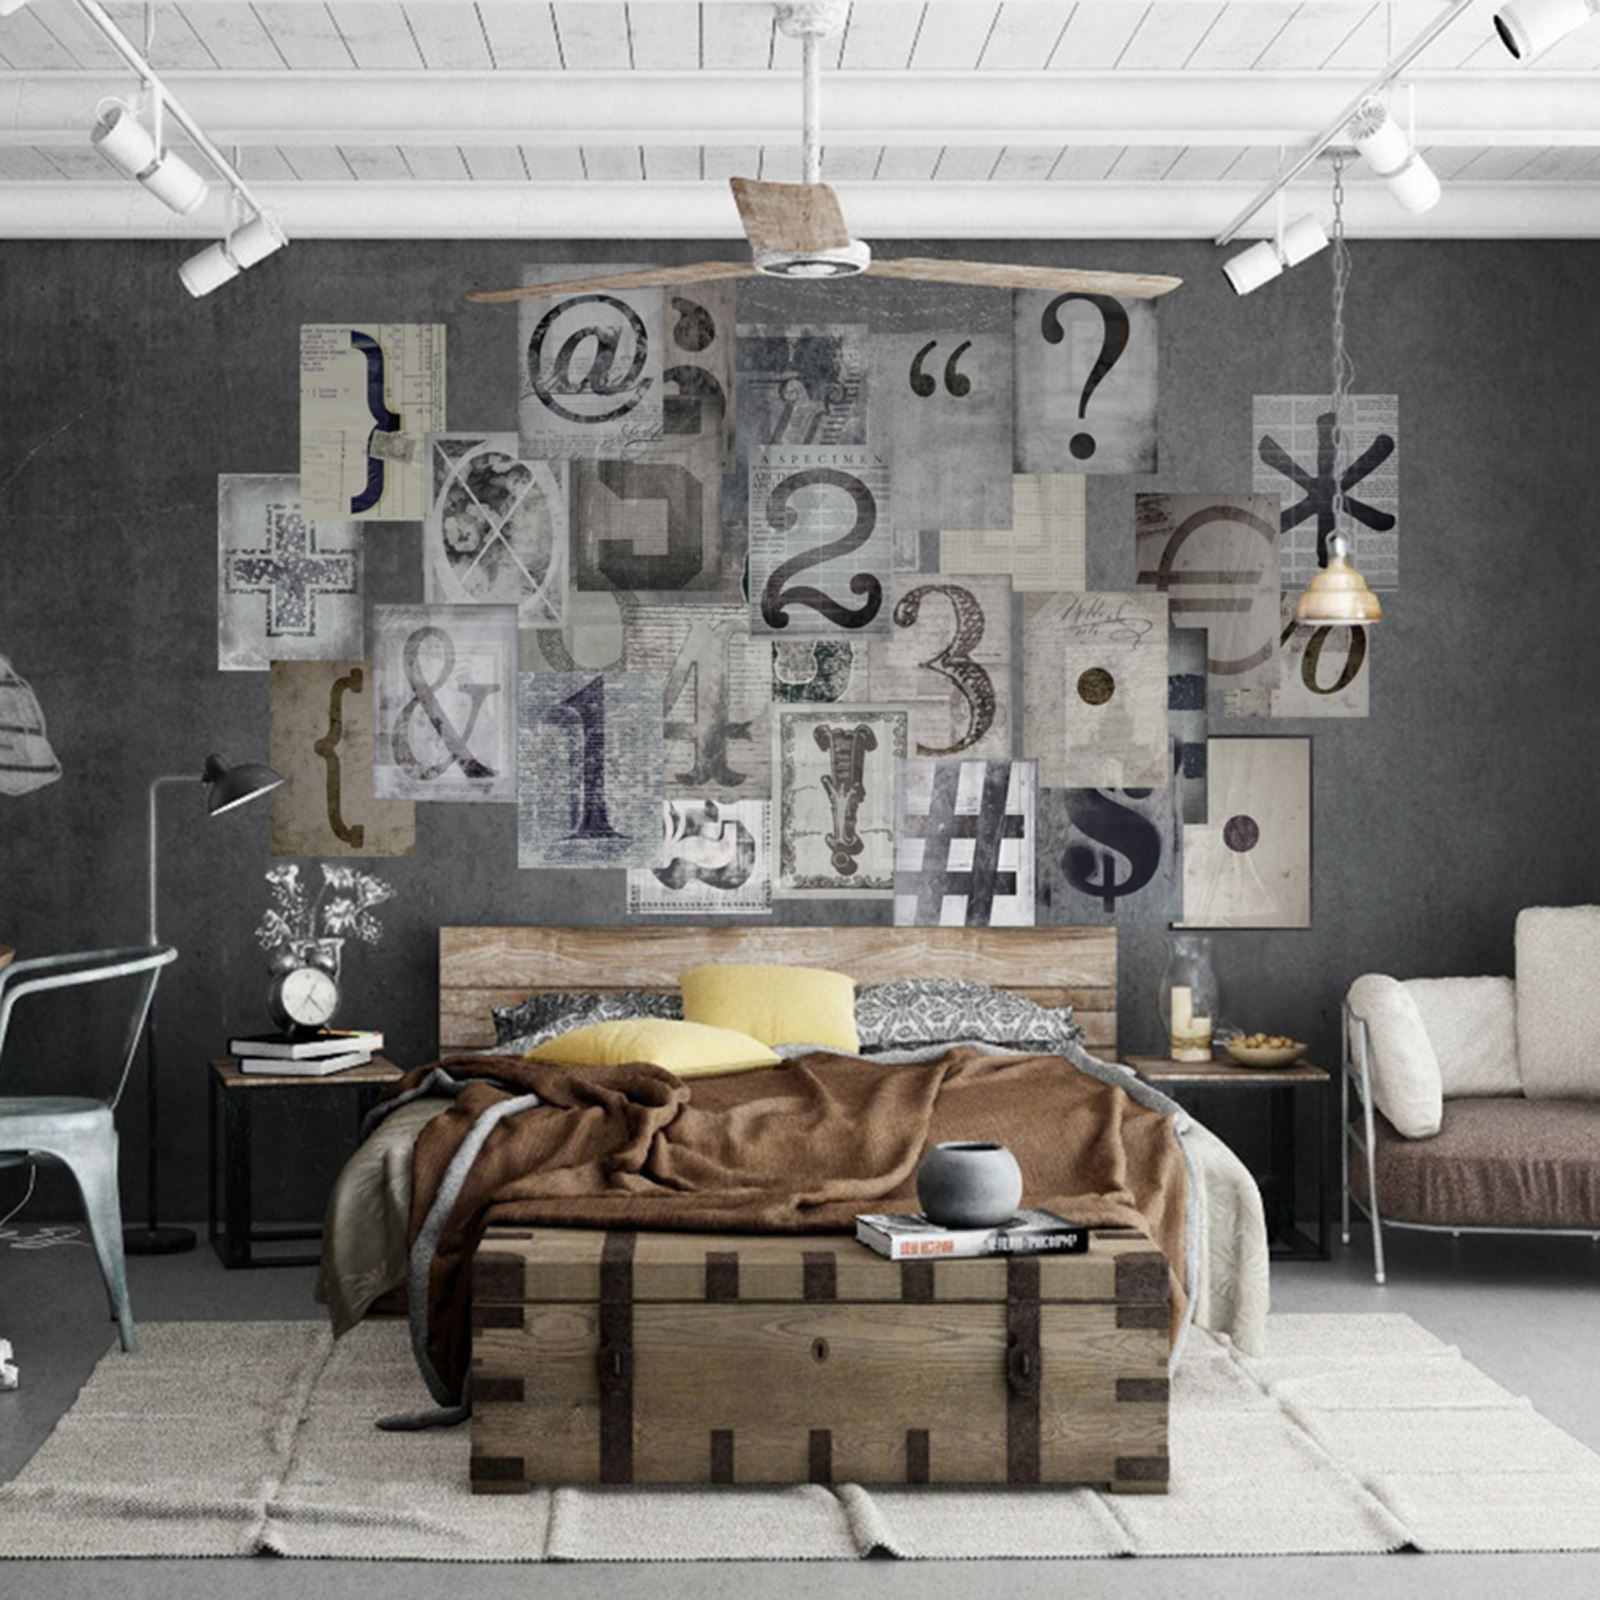 Creative collage designer 64 piece wall mural new york vintage creative collage designer 64 piece wall mural new york vintage map typography amipublicfo Gallery